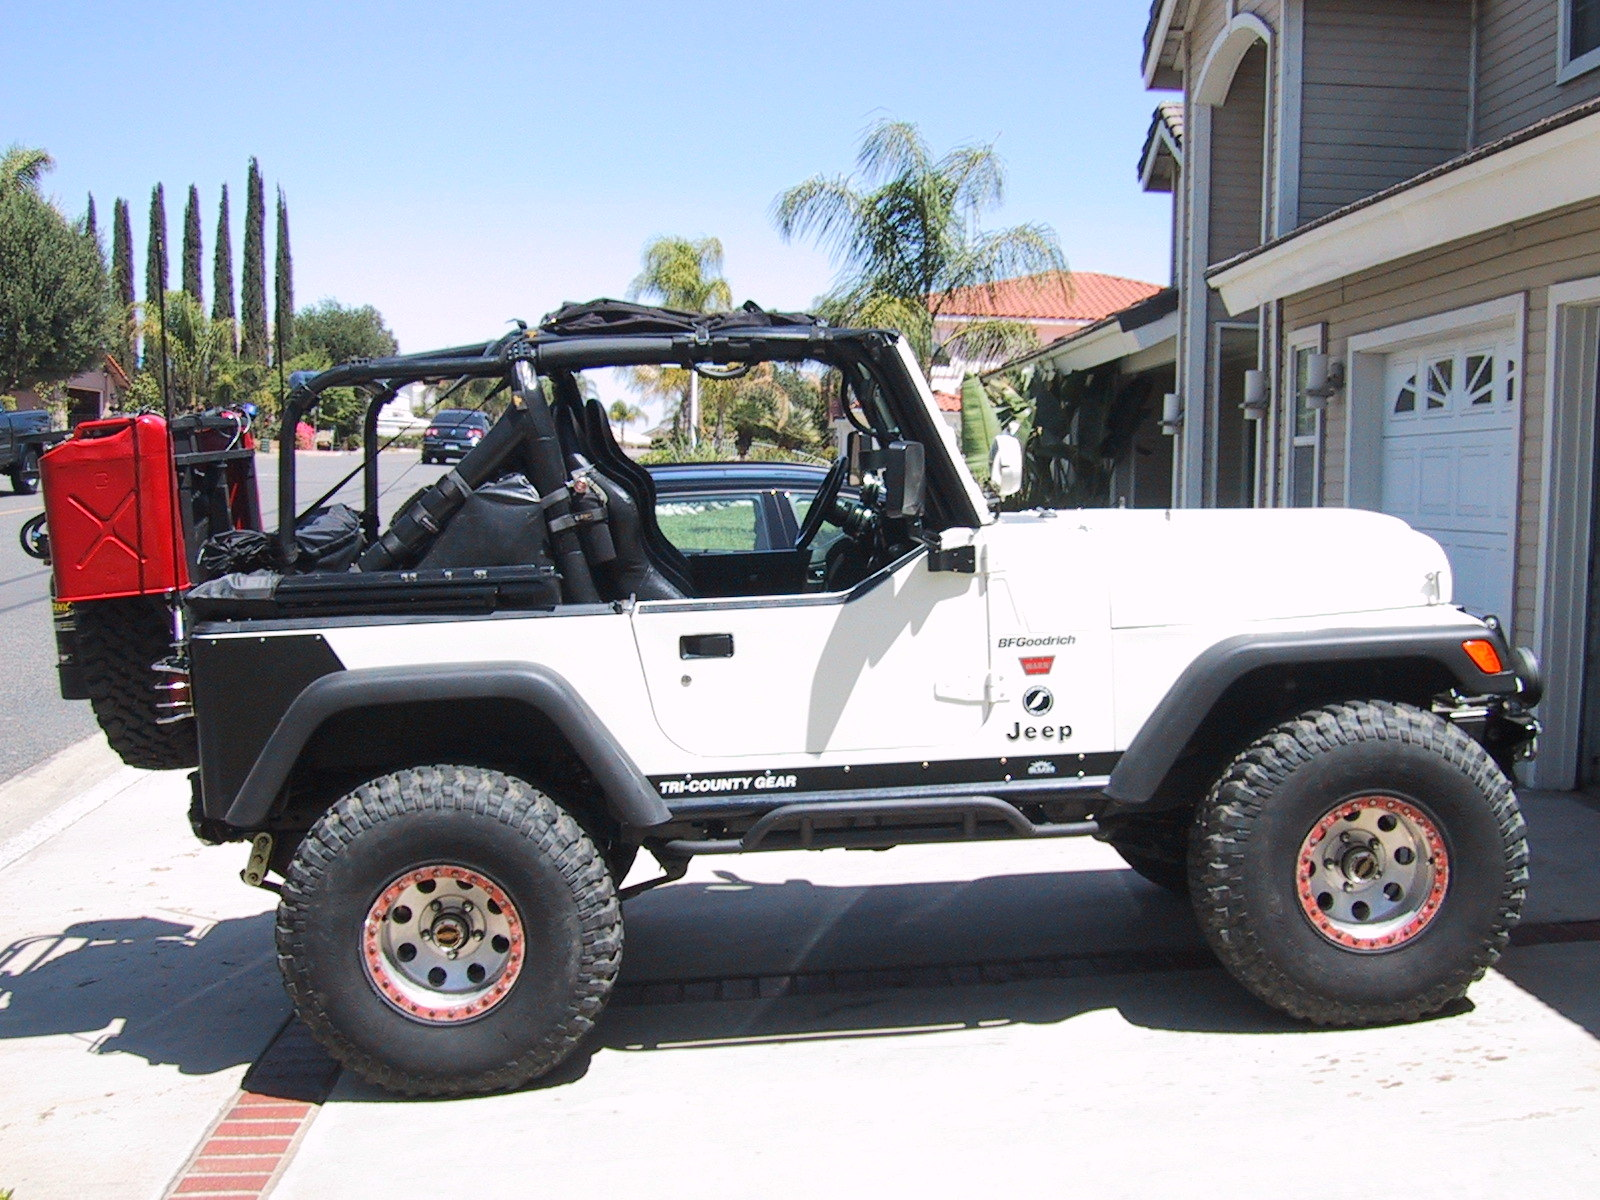 PhilipsK-CJ7's 1984 Jeep CJ7